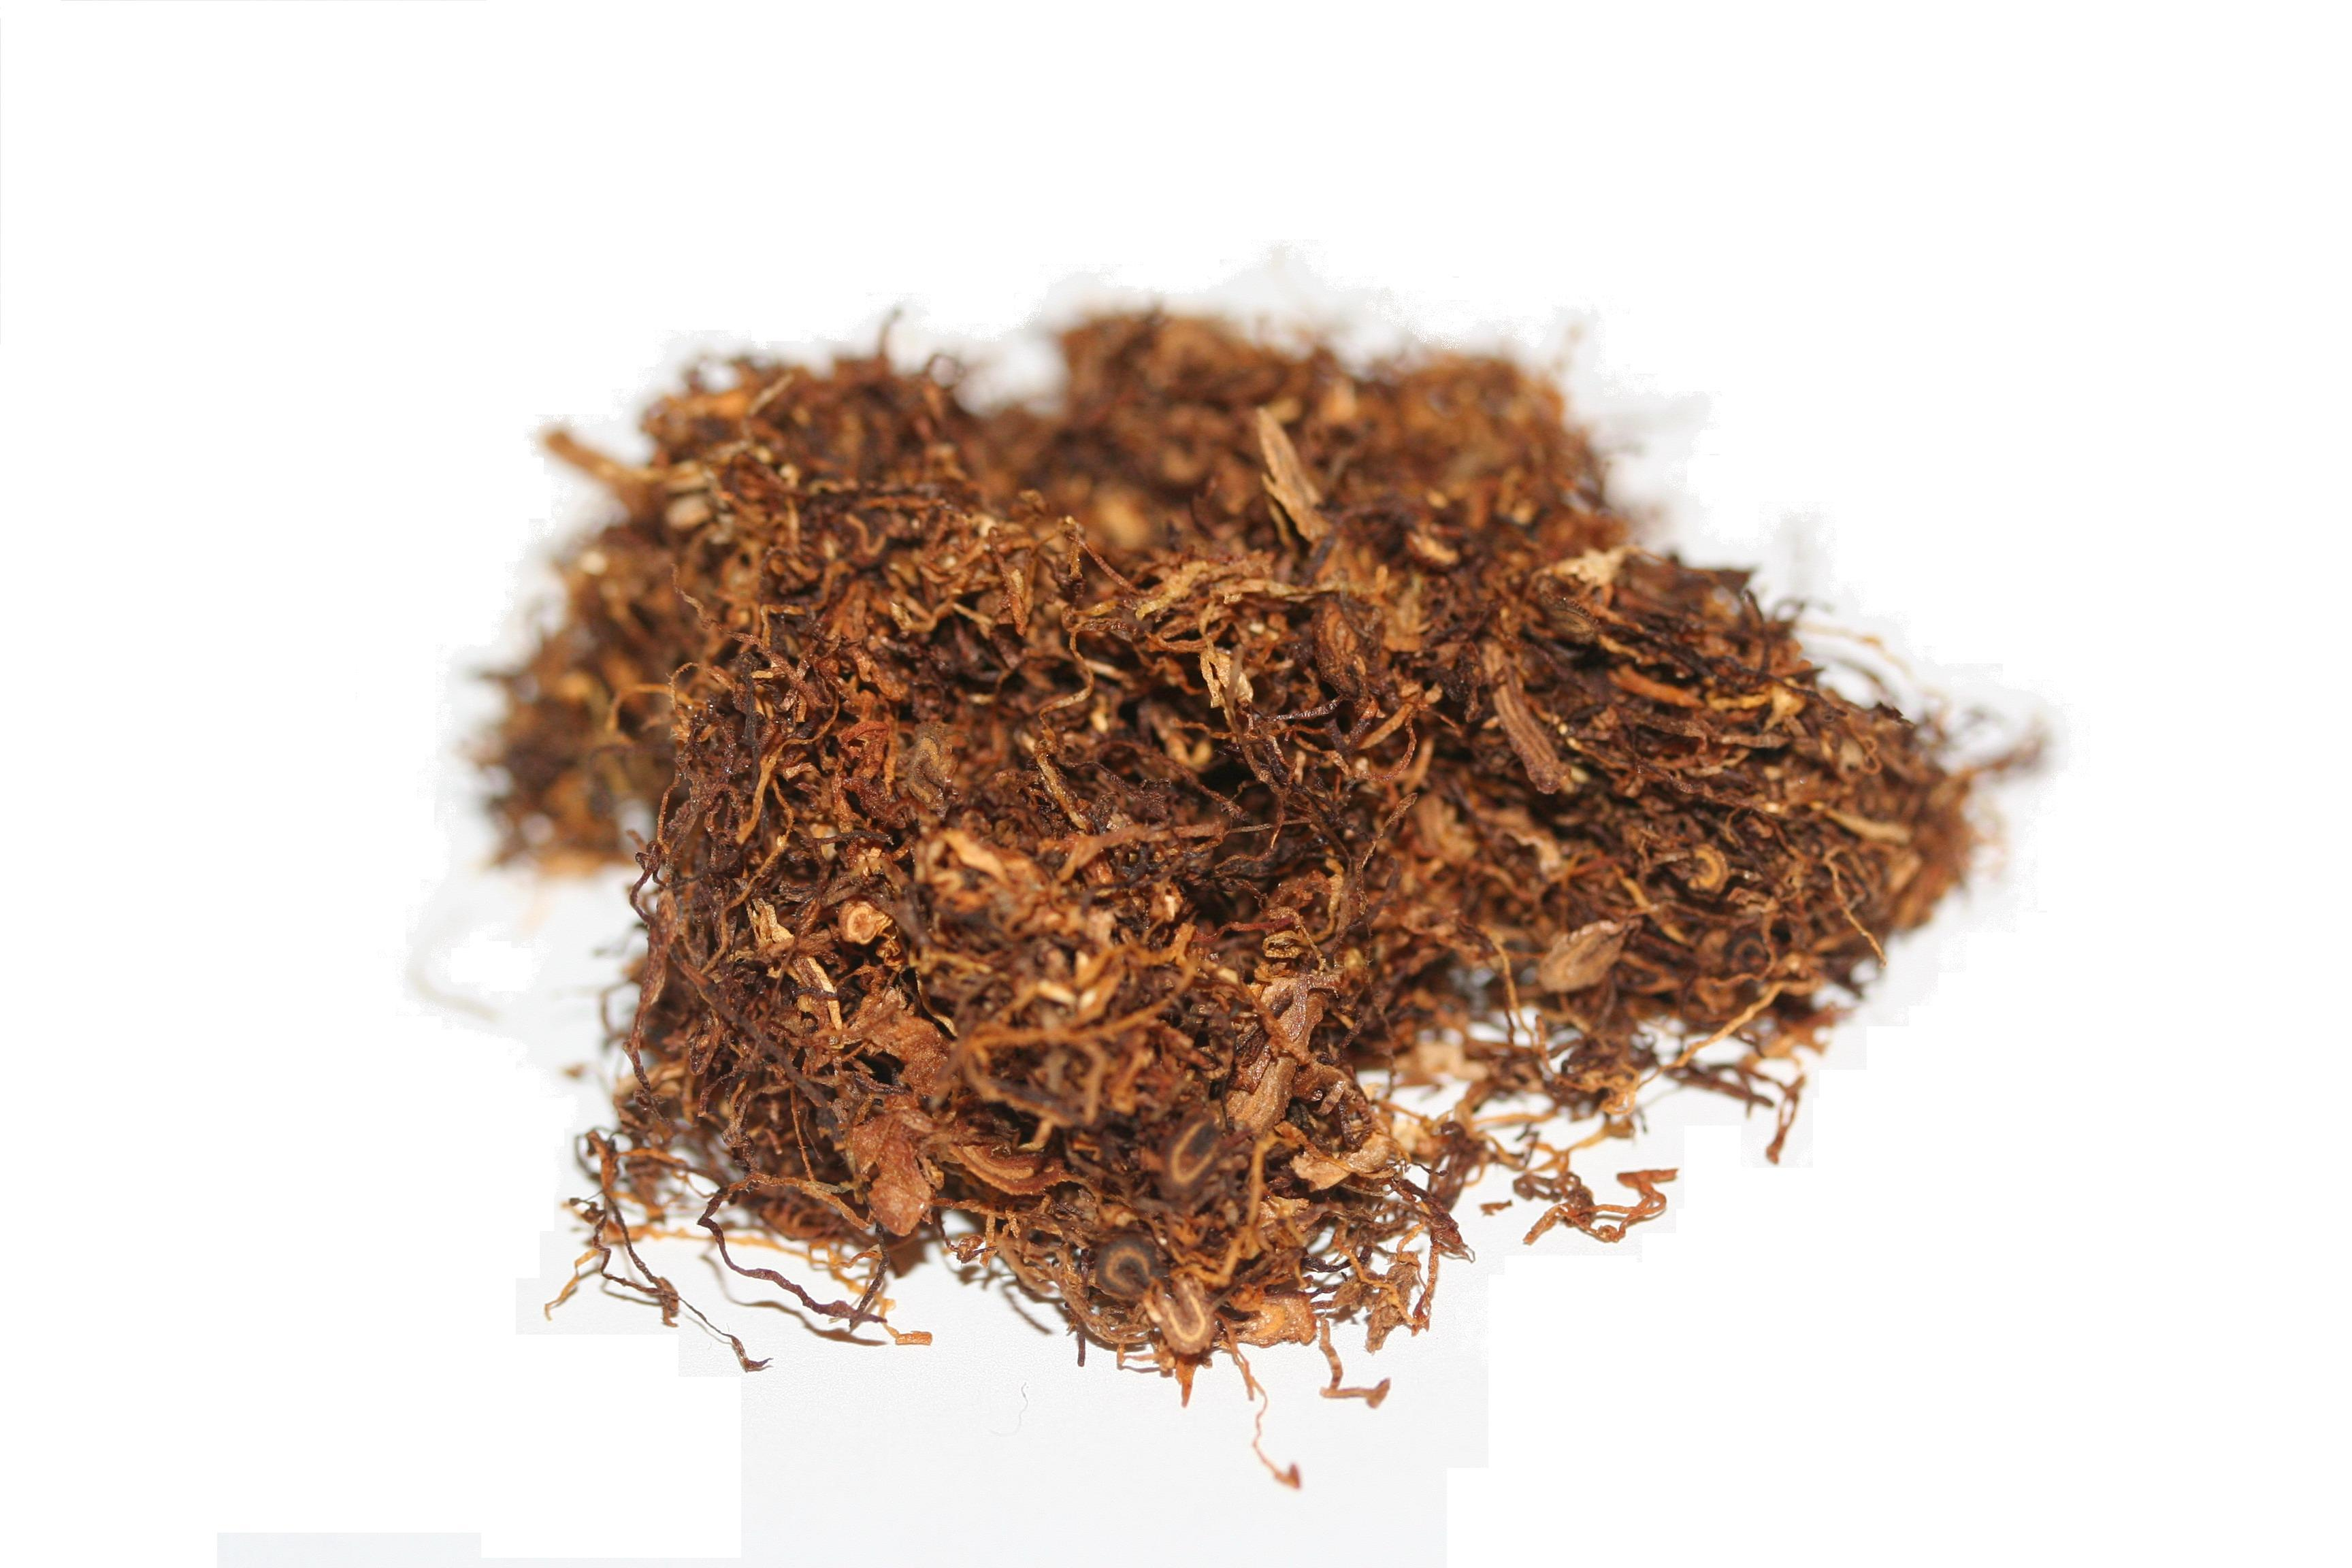 Black tobacco and other tobacco leaves